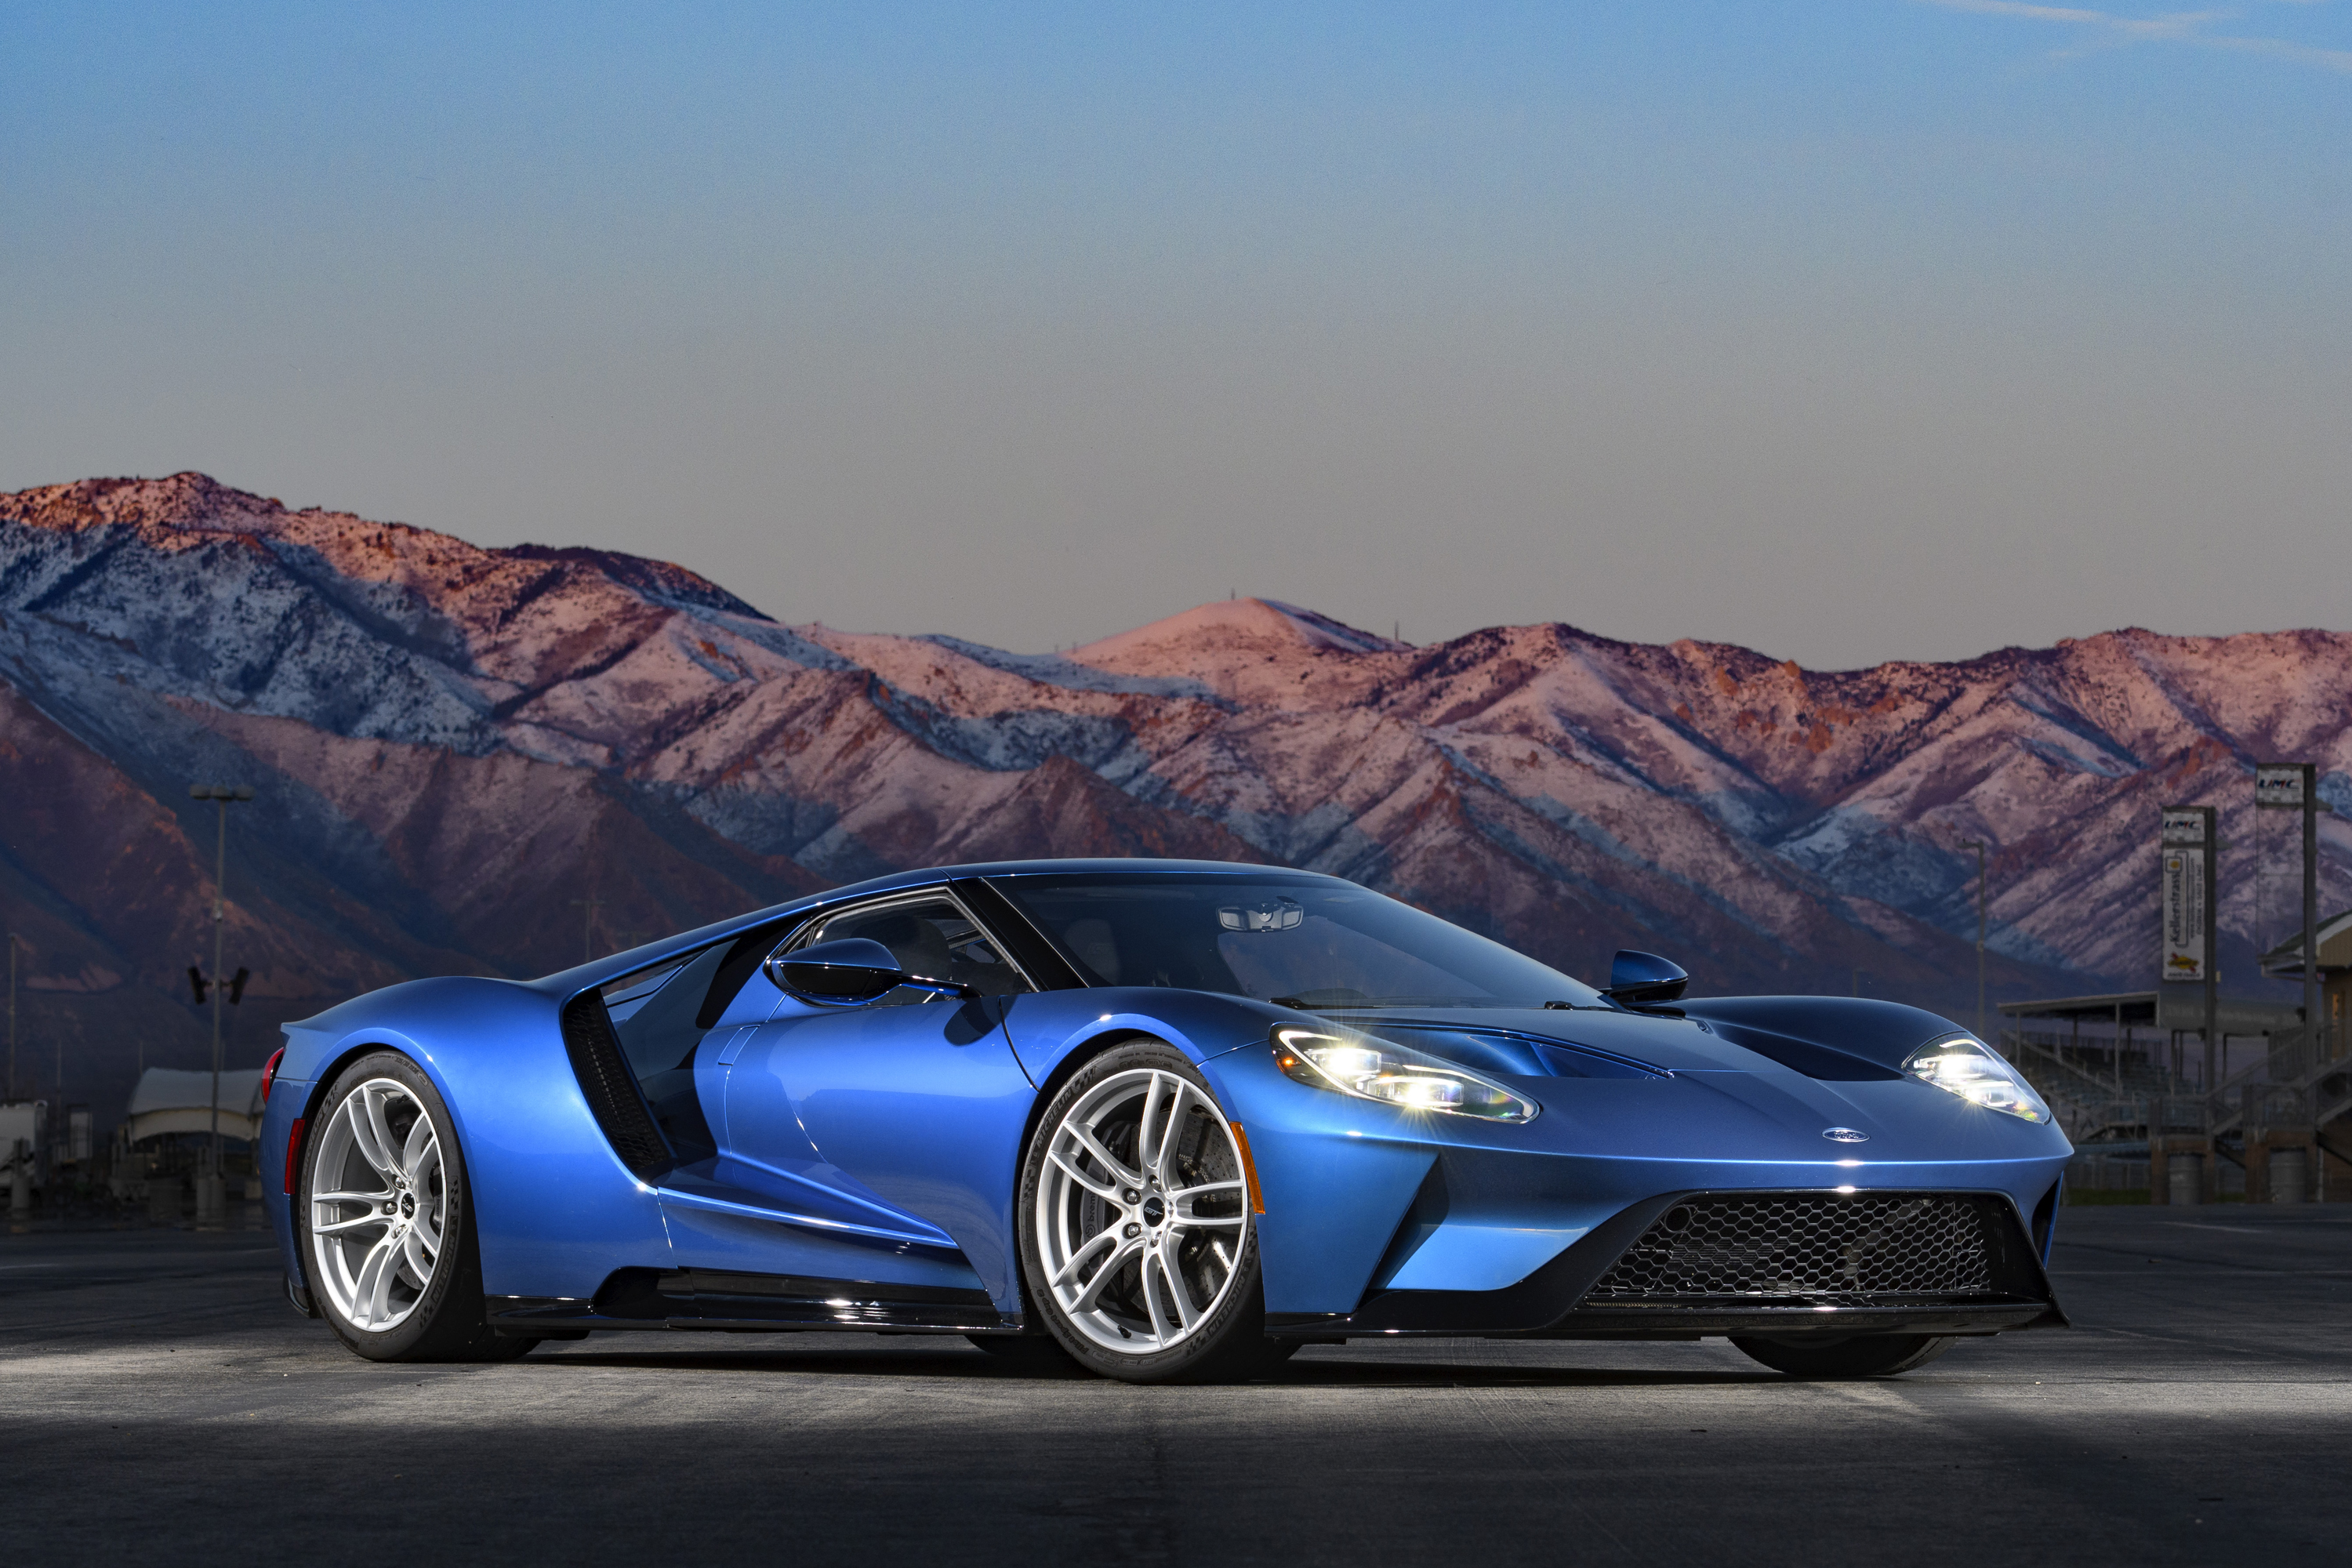 2017 Ford GT Liquid Blue No Stripes